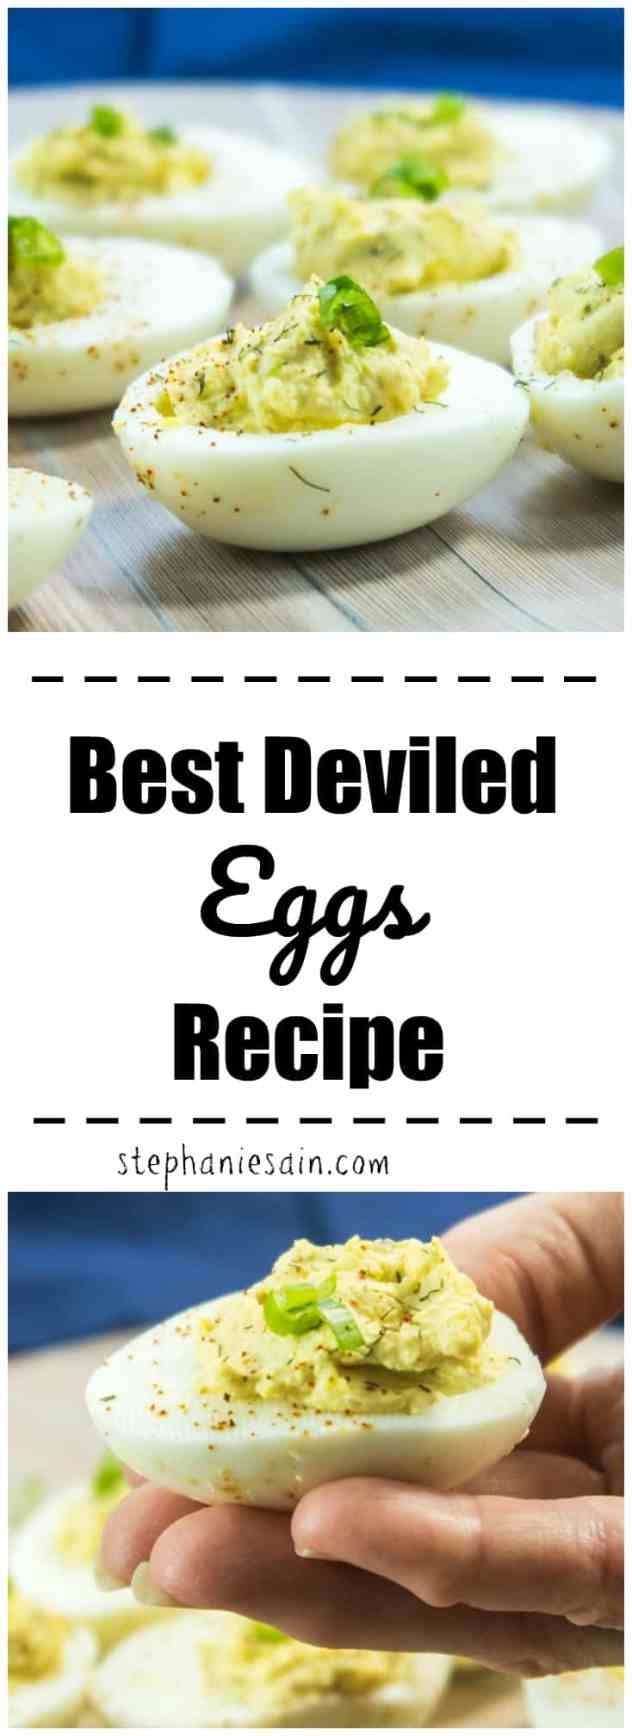 This Best Deviled Eggs Recipe is super Easy to make and will soon become you go-to for deviled eggs. Perfect for family gatherings, holidays and cookouts. Gluten Free & Vegetarian.